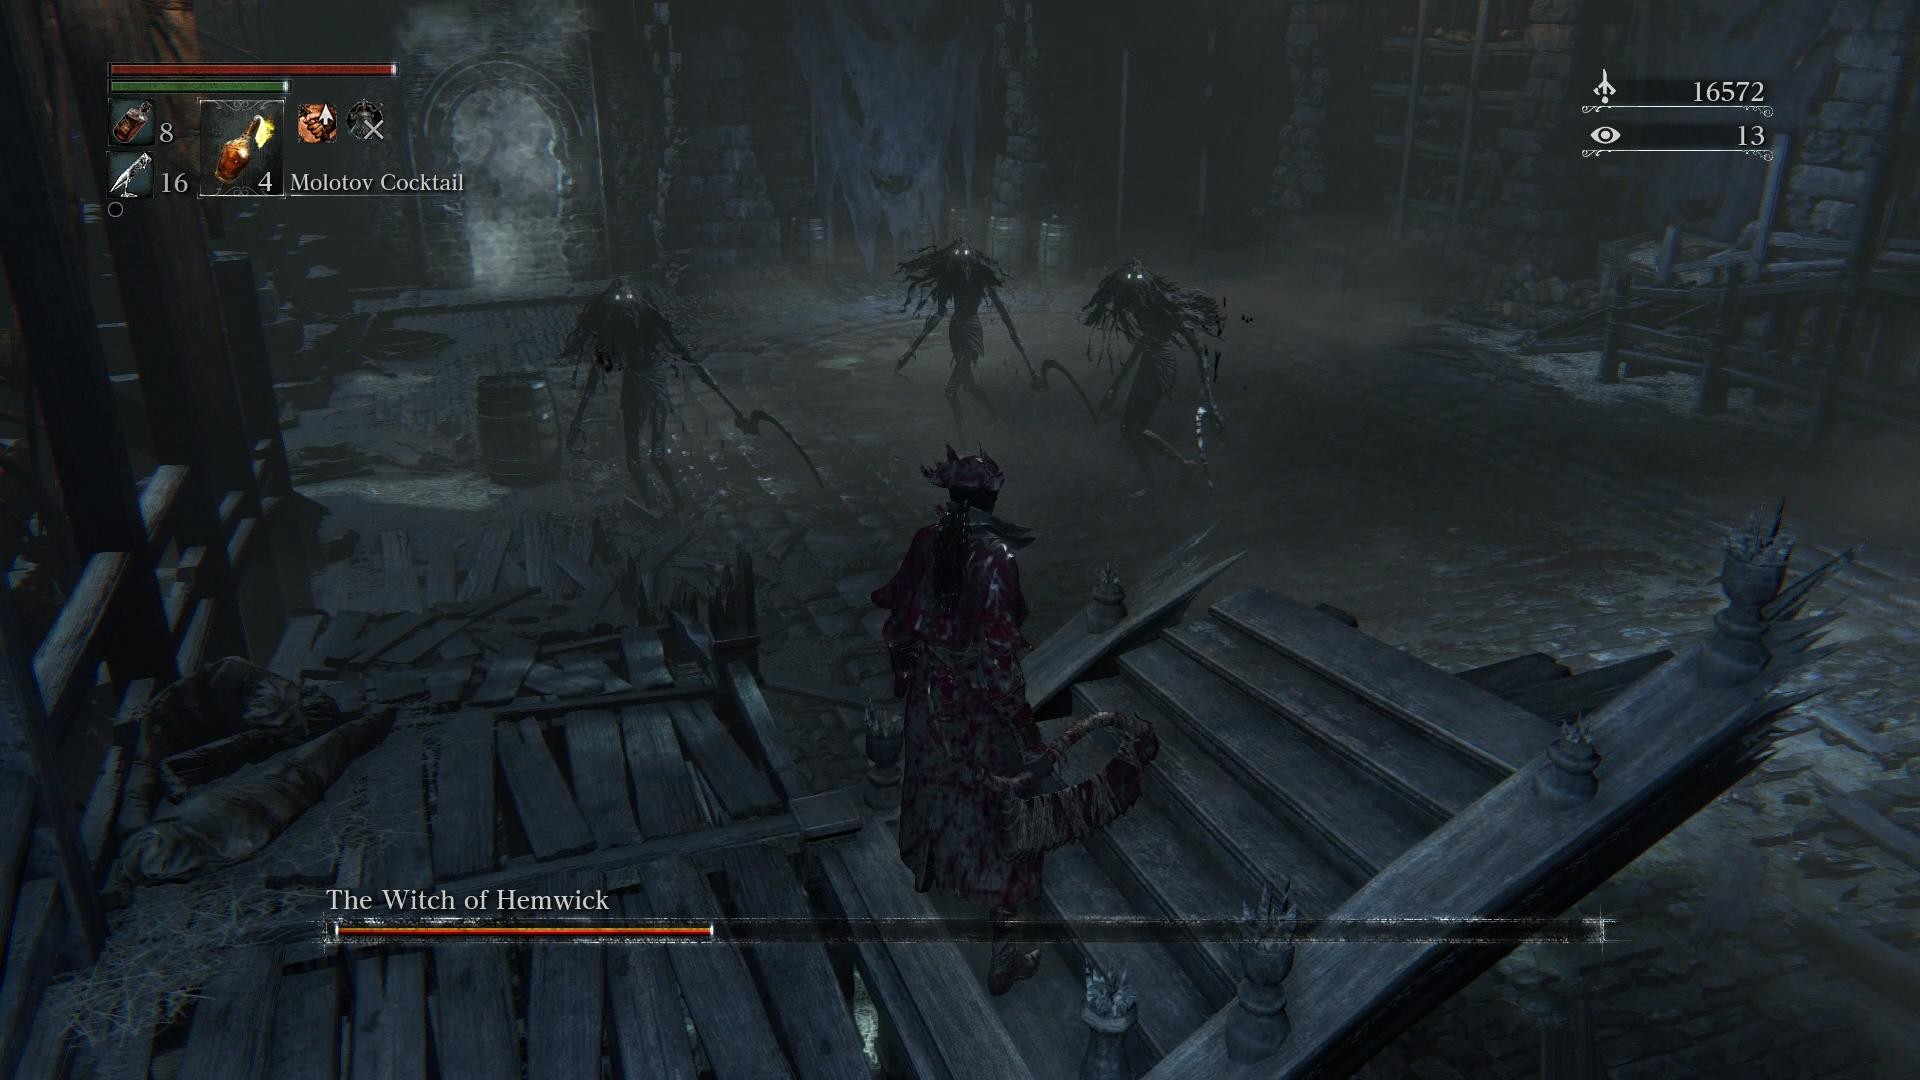 Bloodborne Boss Guide: How to Beat The Witches of Hemwick